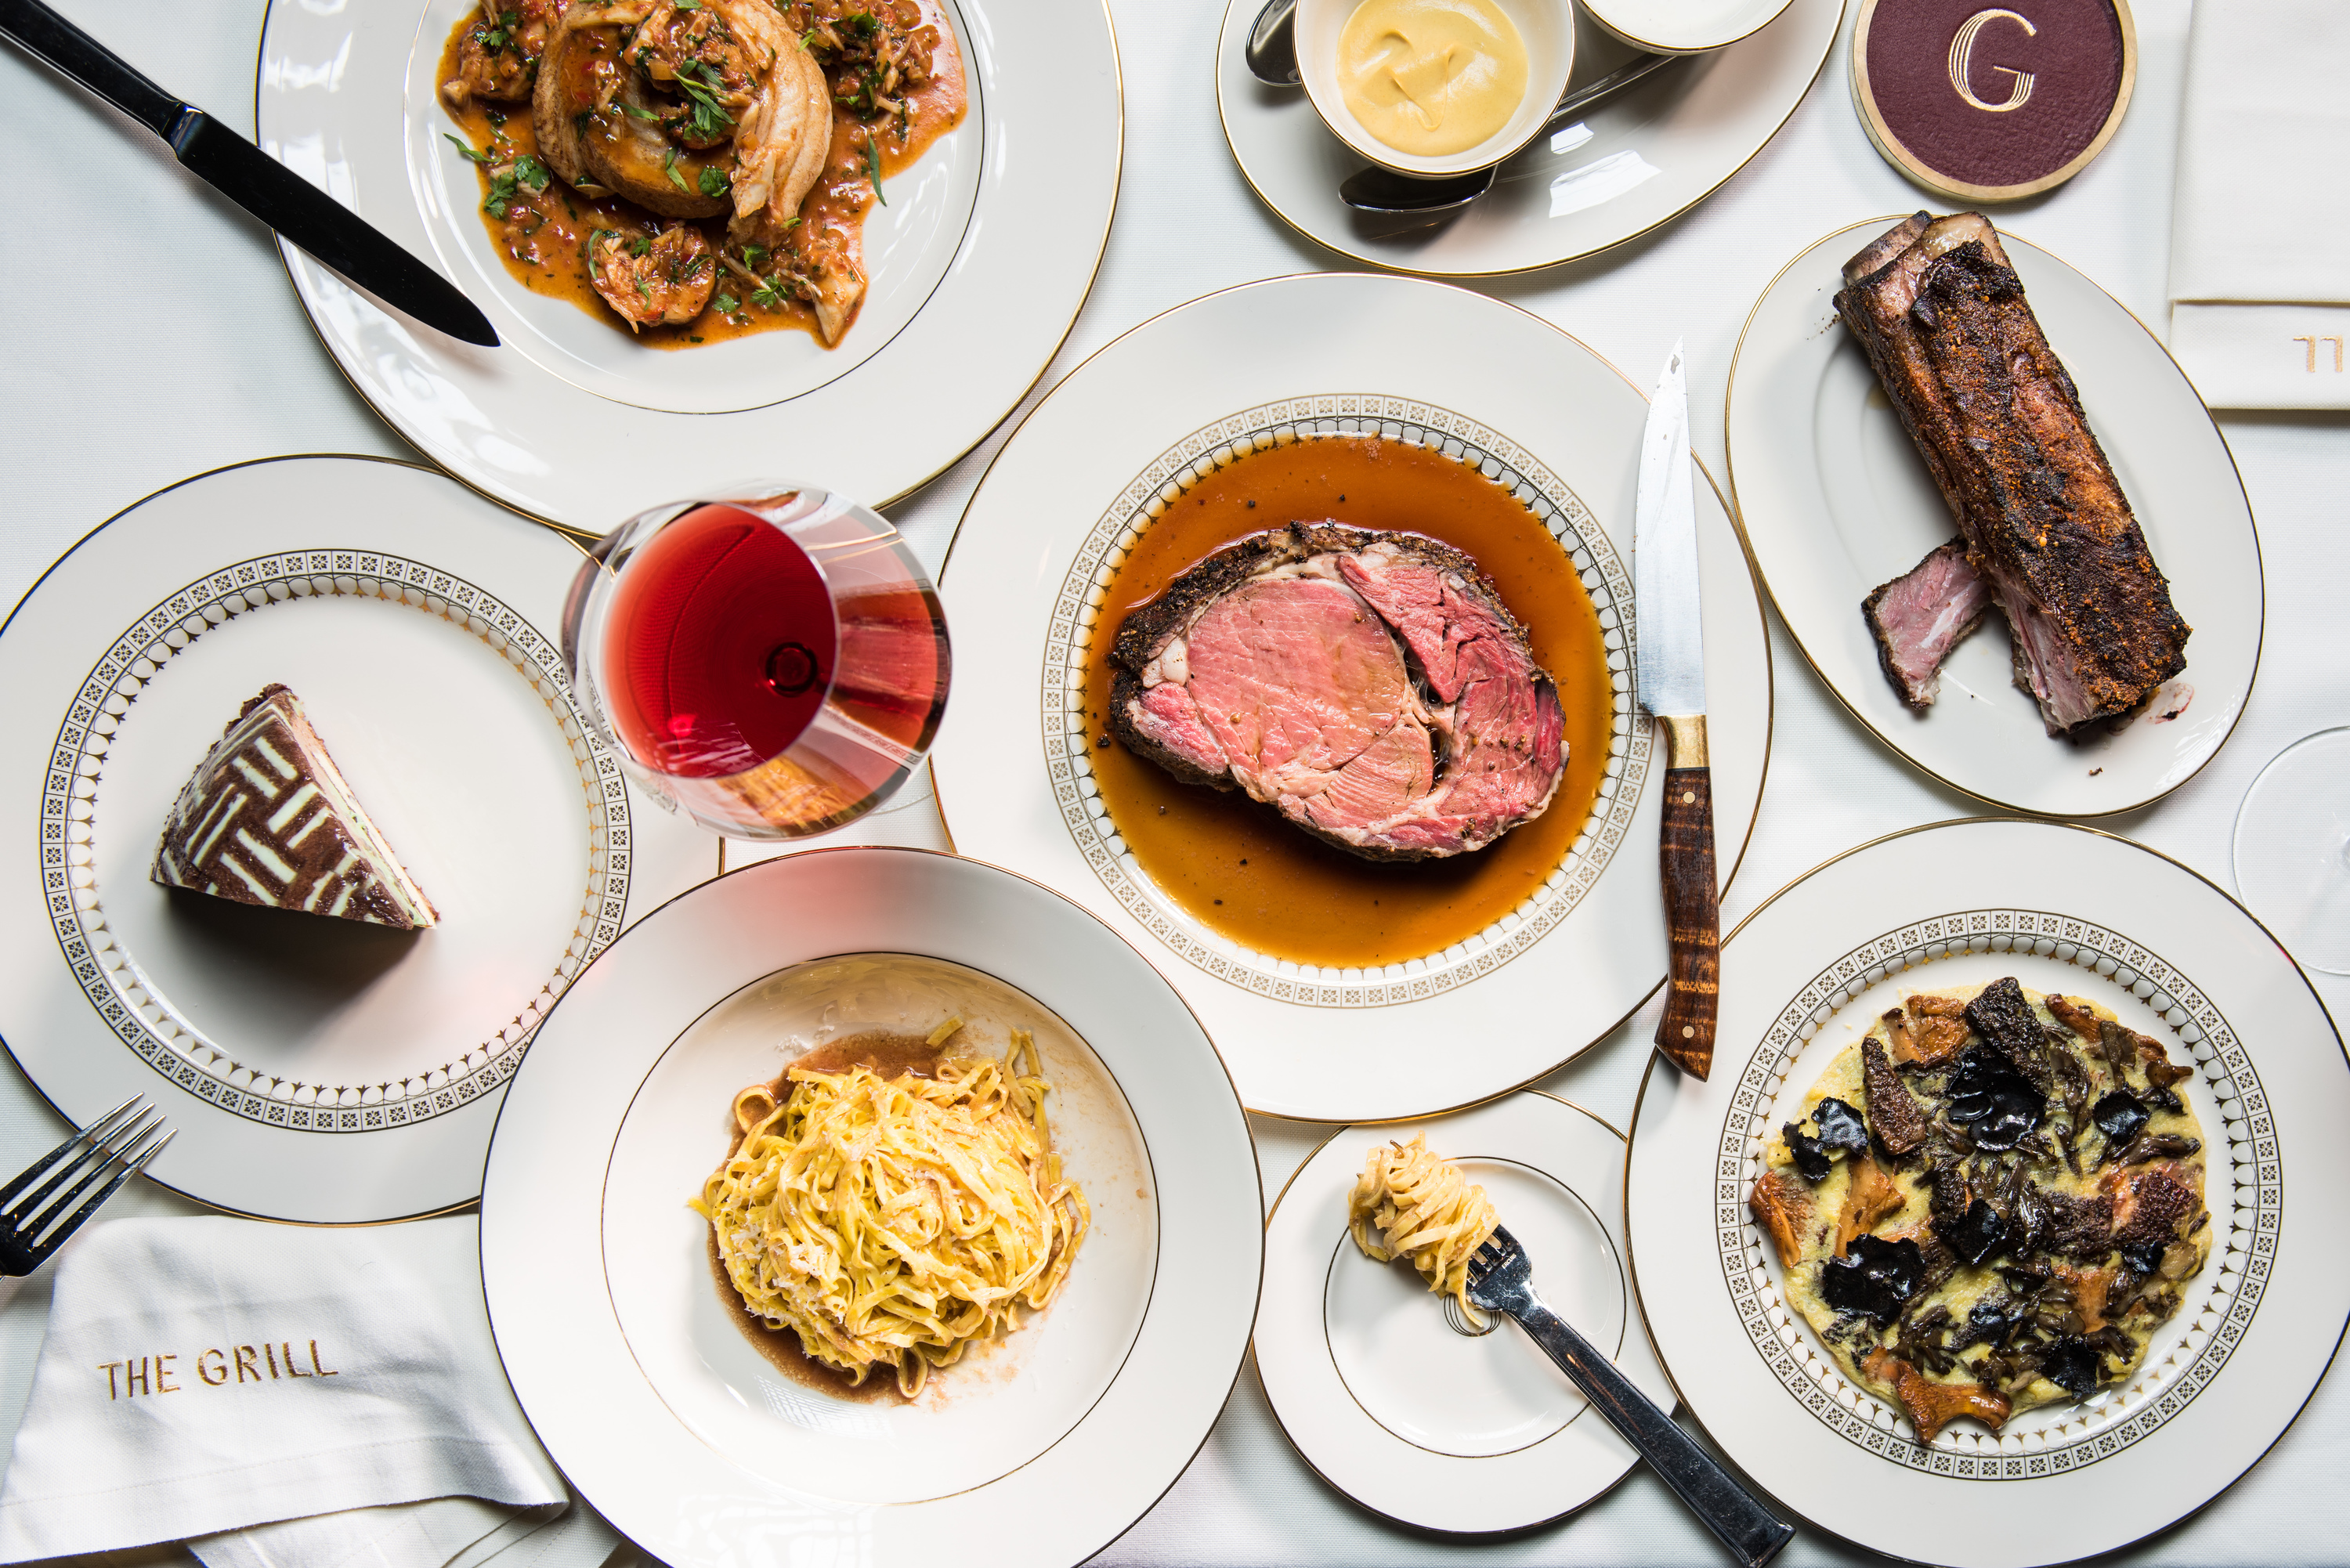 The absolute best restaurants in NYC